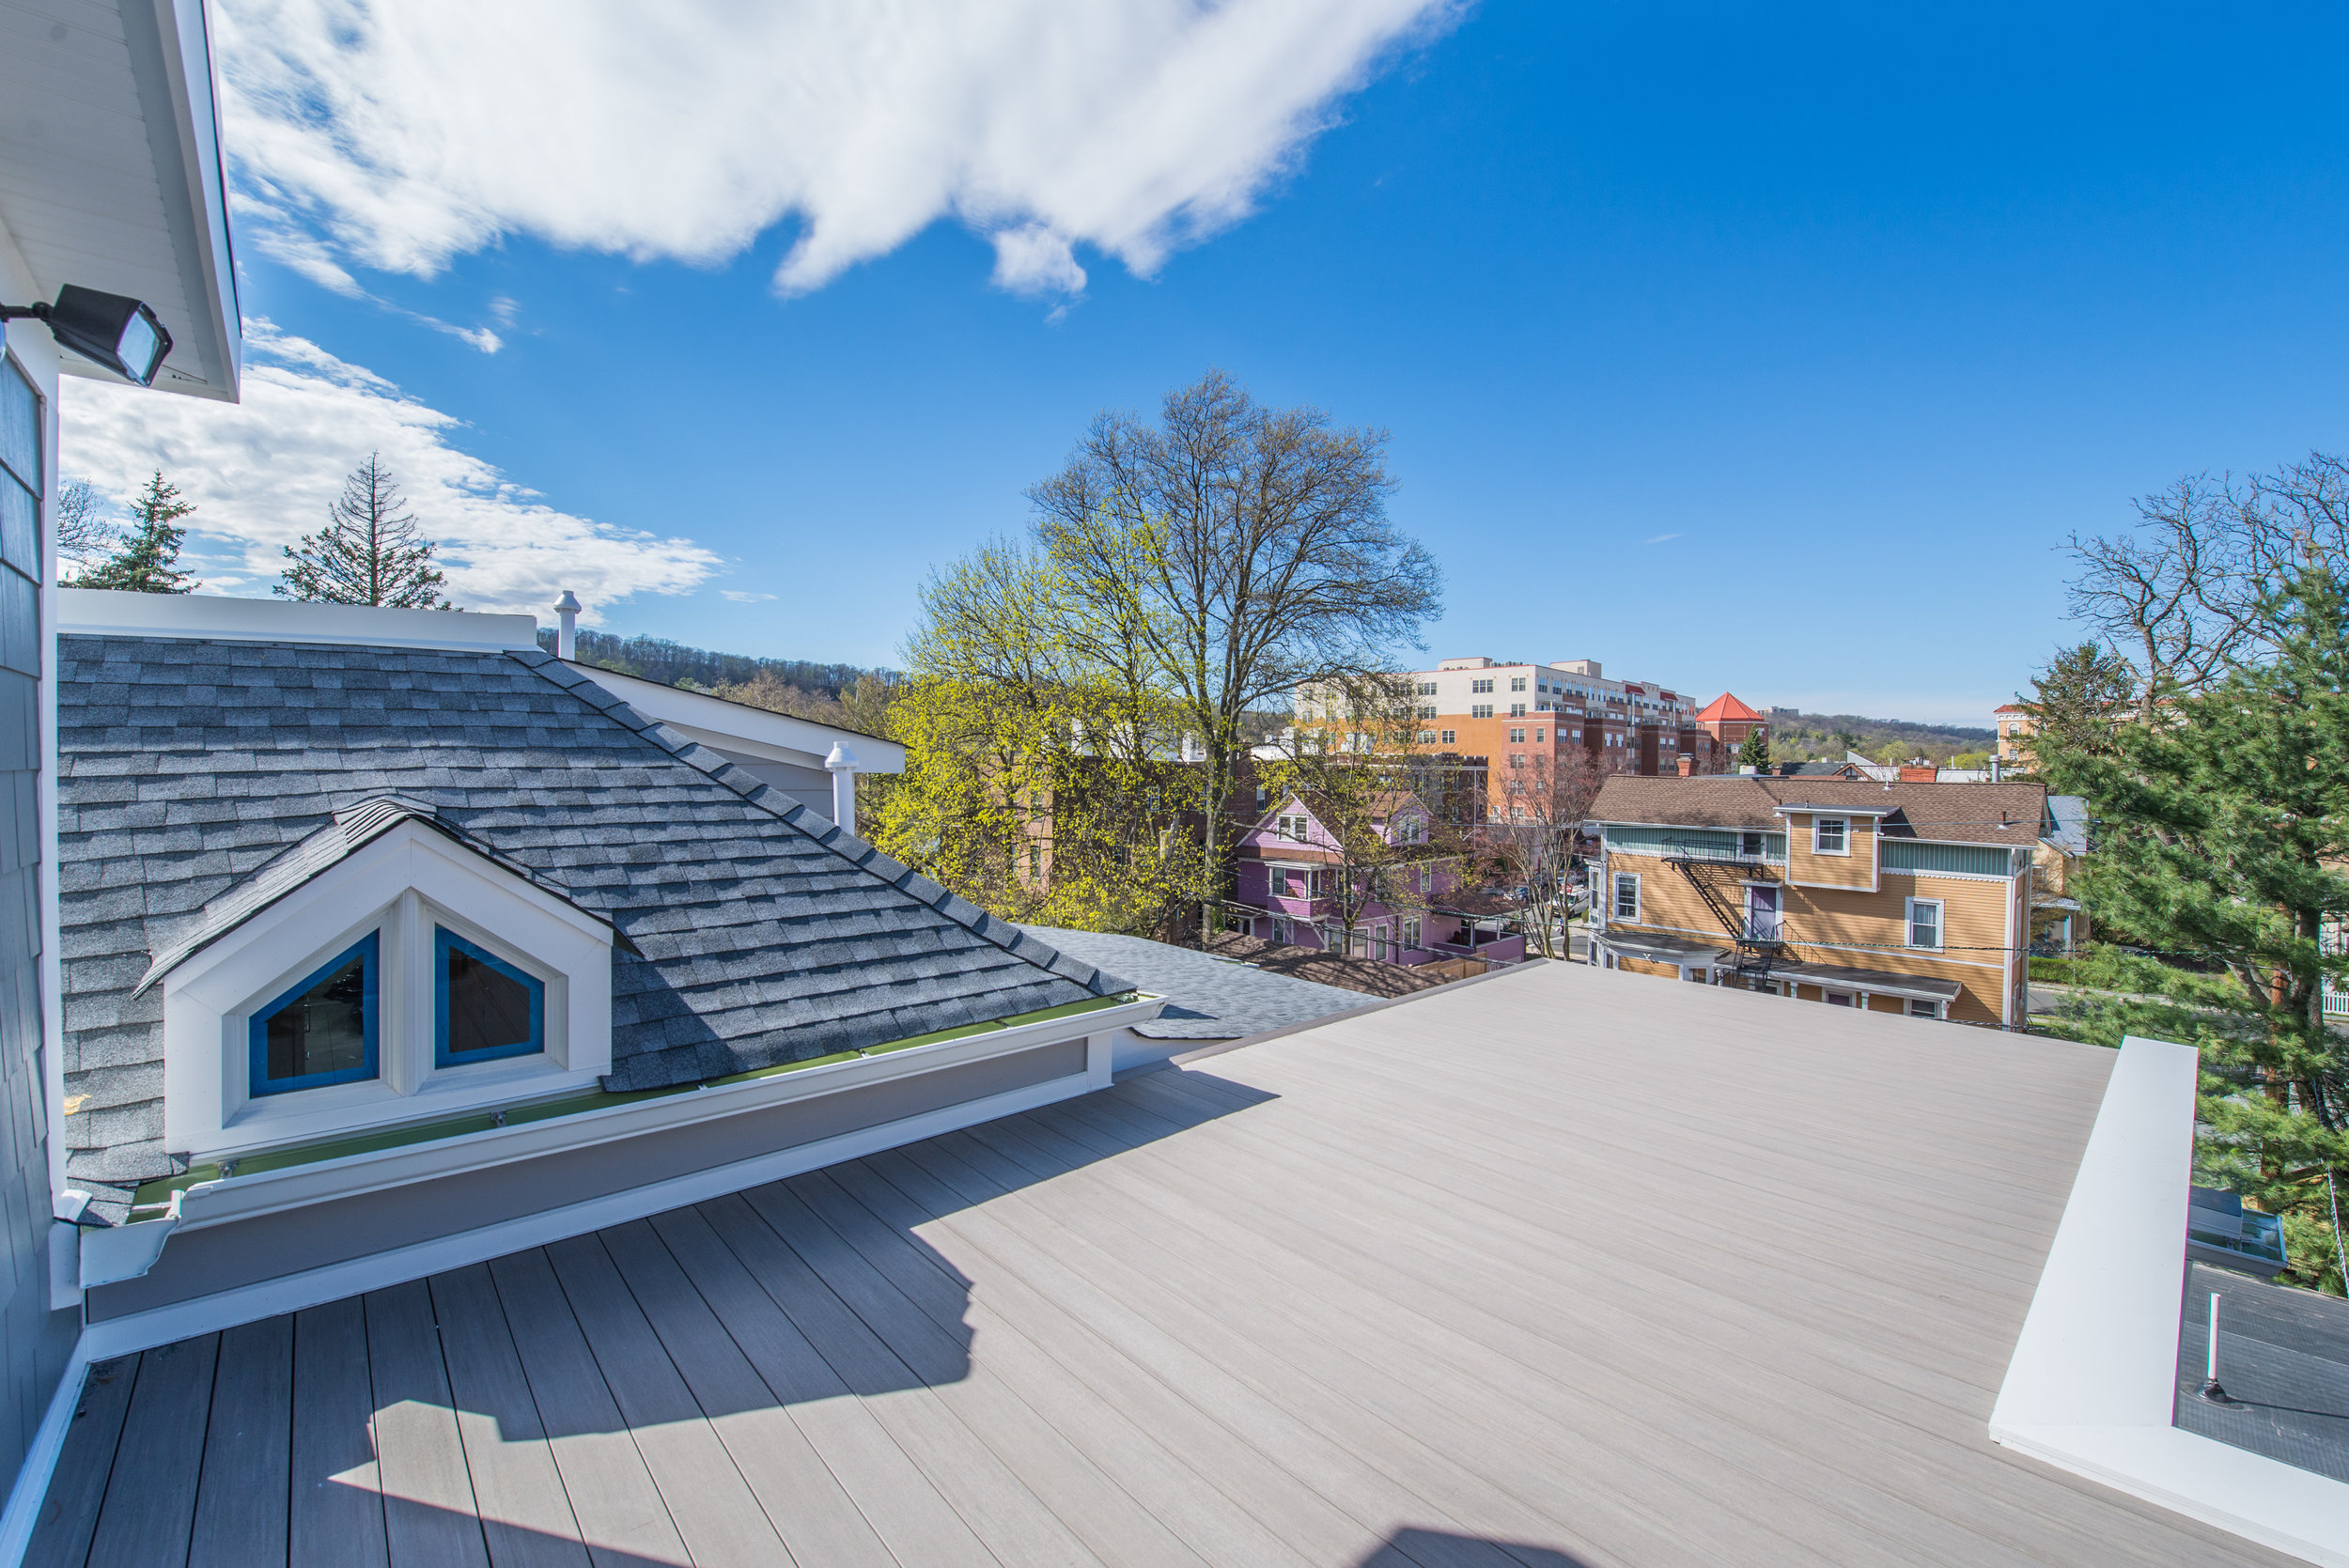 UNIT C _ Private Roof Deck View. Don't worry we have added a very nice black picket railing !